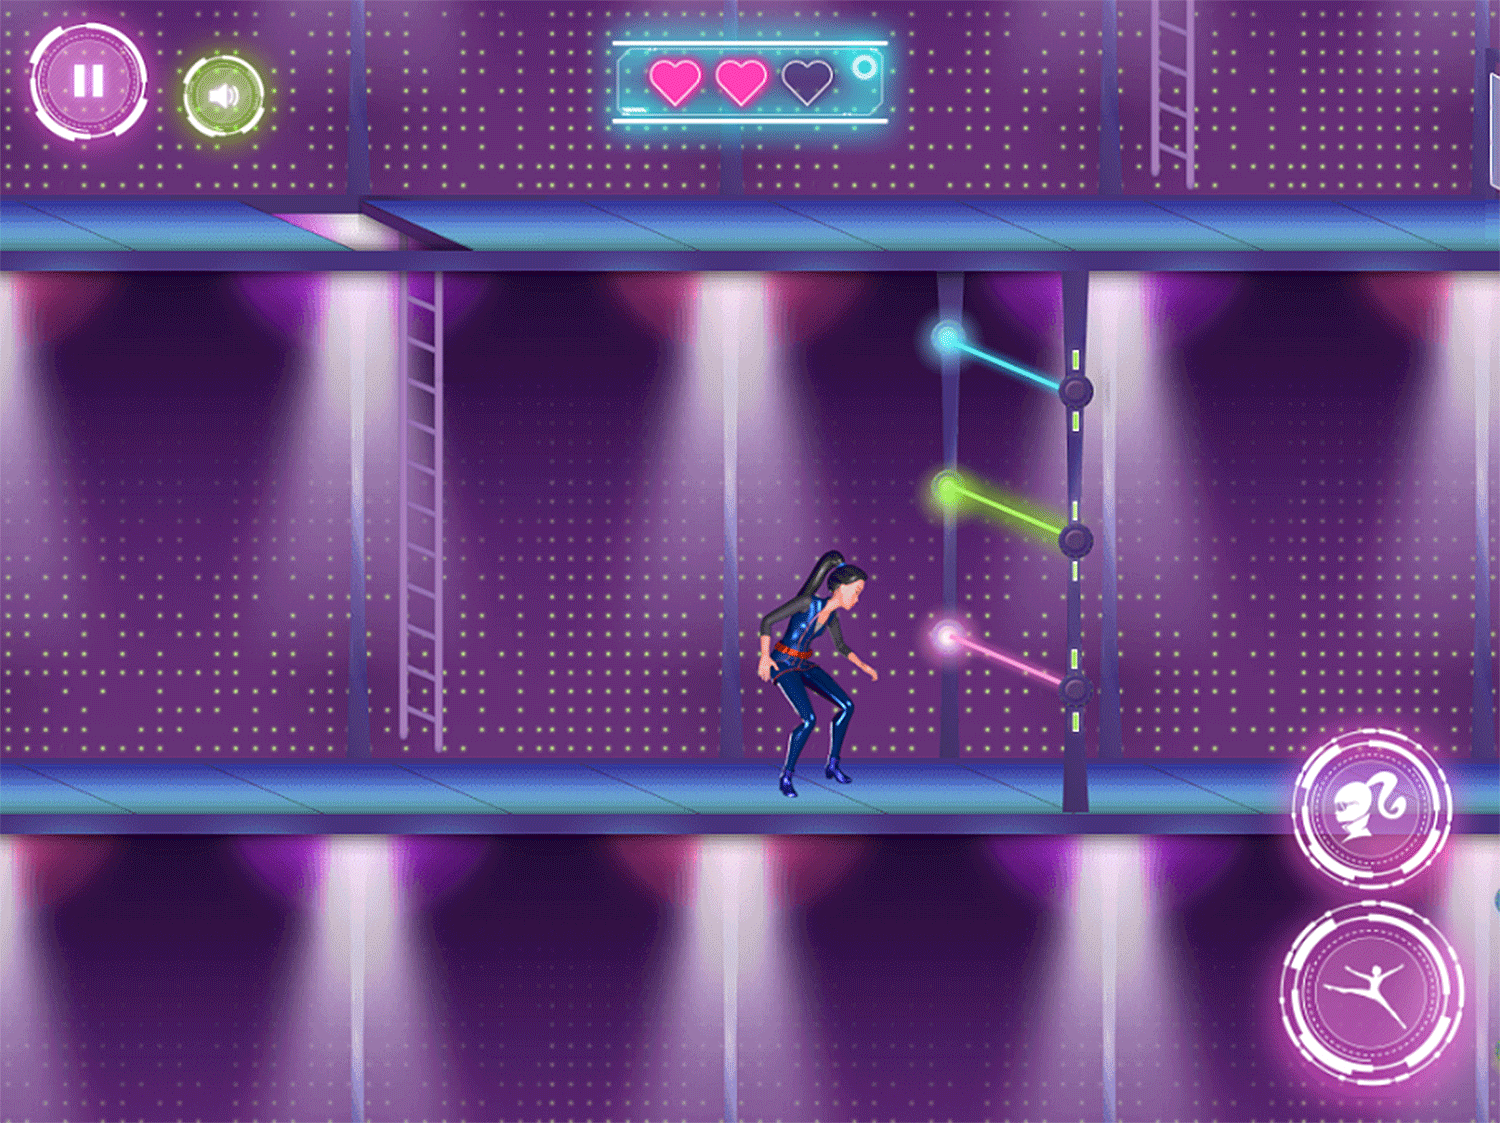 Barbie Spy Squad Academy Game Laser Sneaking Game Screenshot.